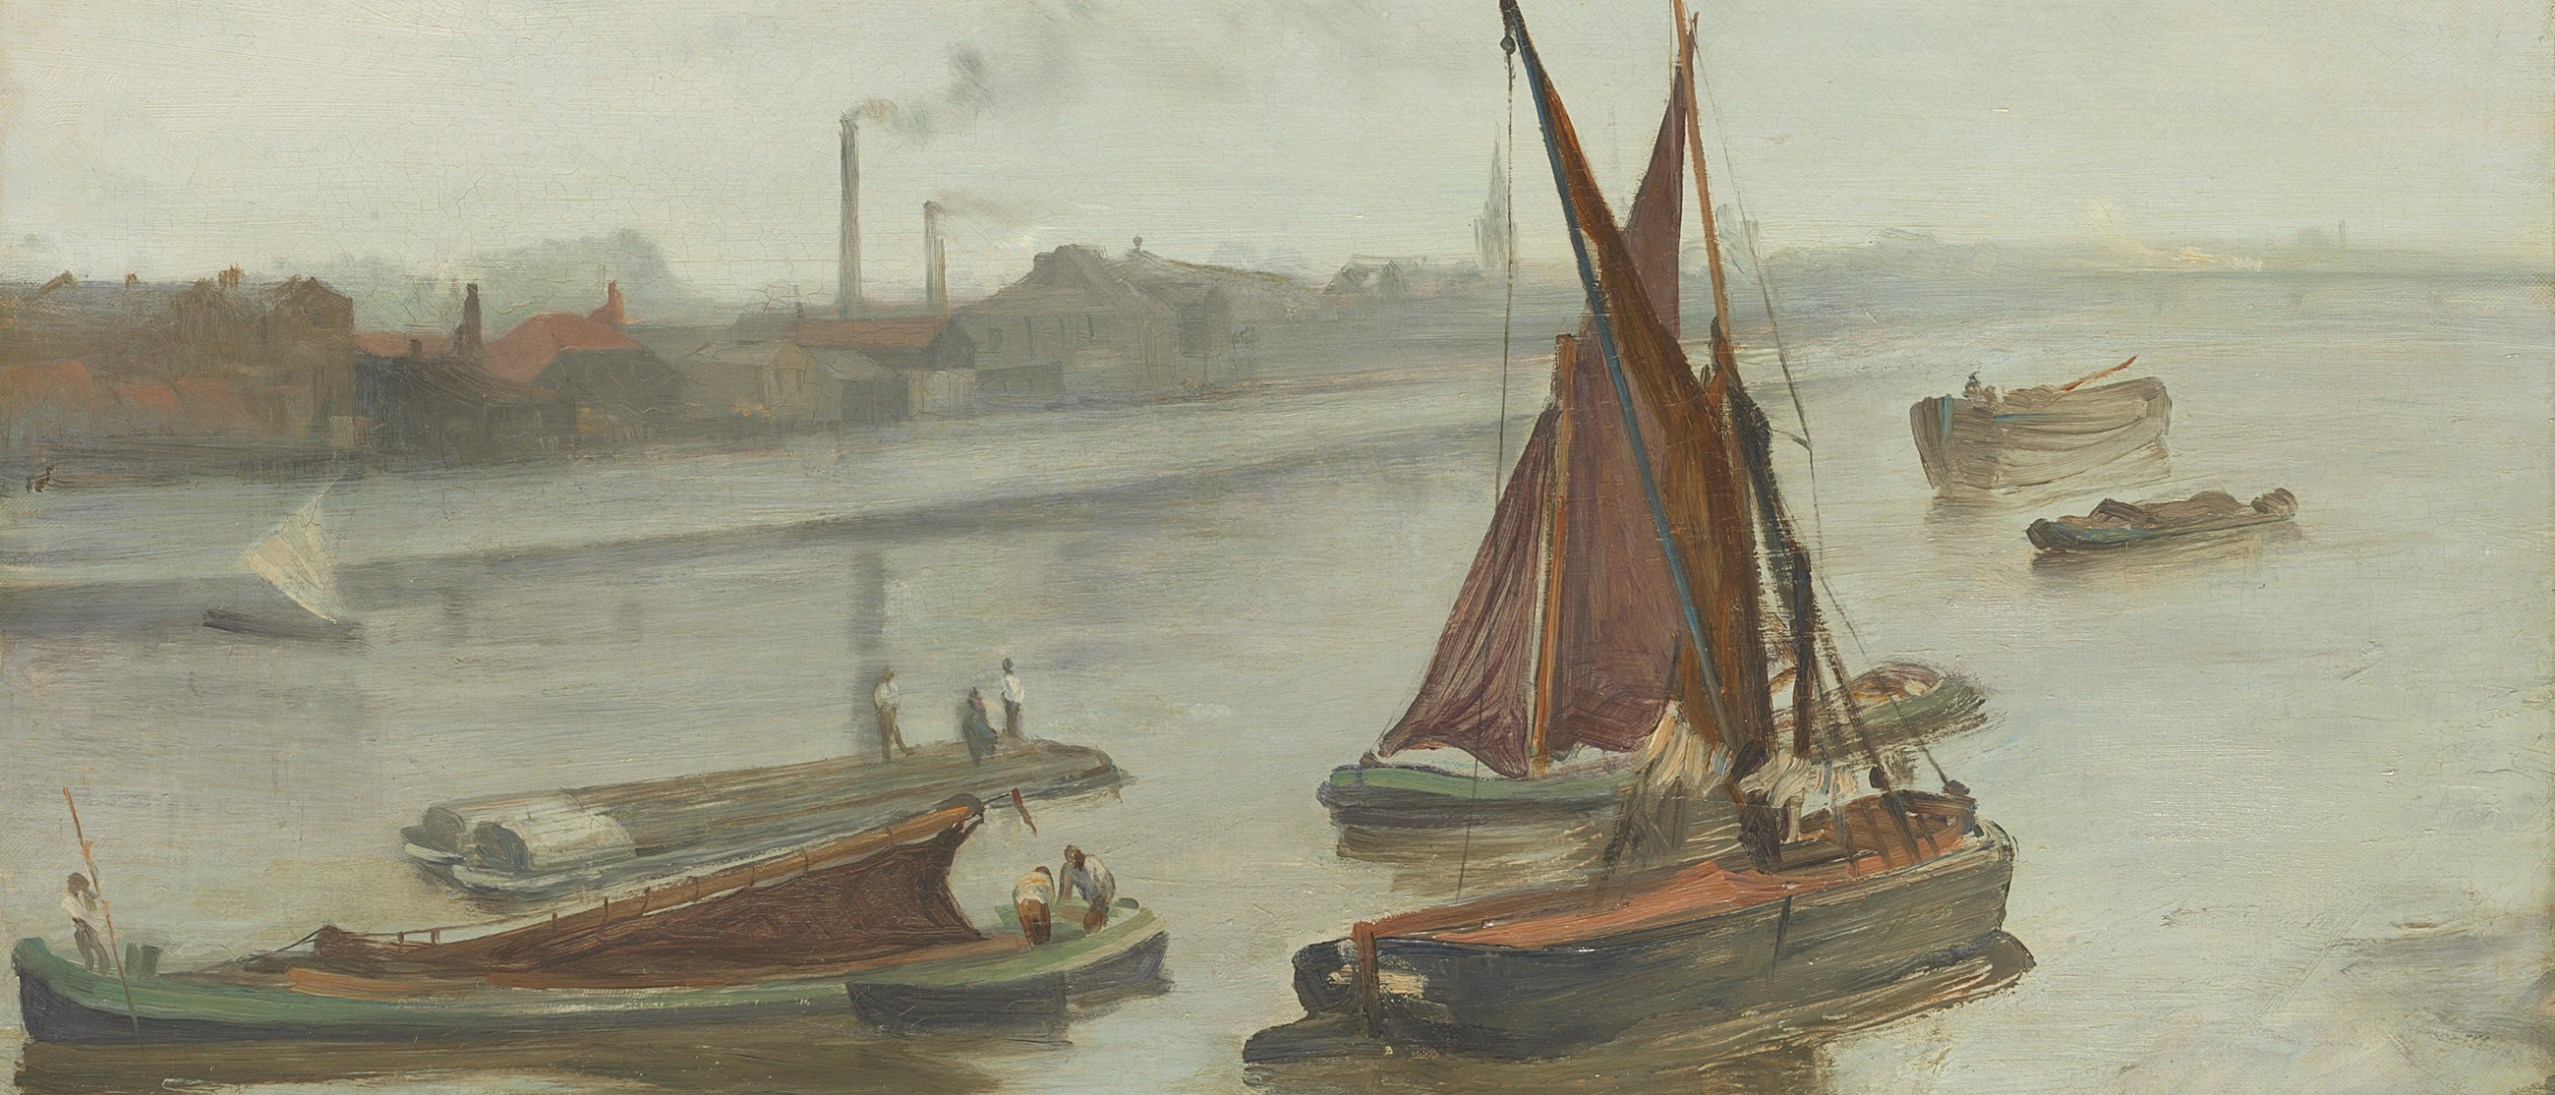 Detail, Grey and Silver–Old Battersea Reach, by James McNeill Whistler. Oil on canvas, 1863. The Art Institute of Chicago.